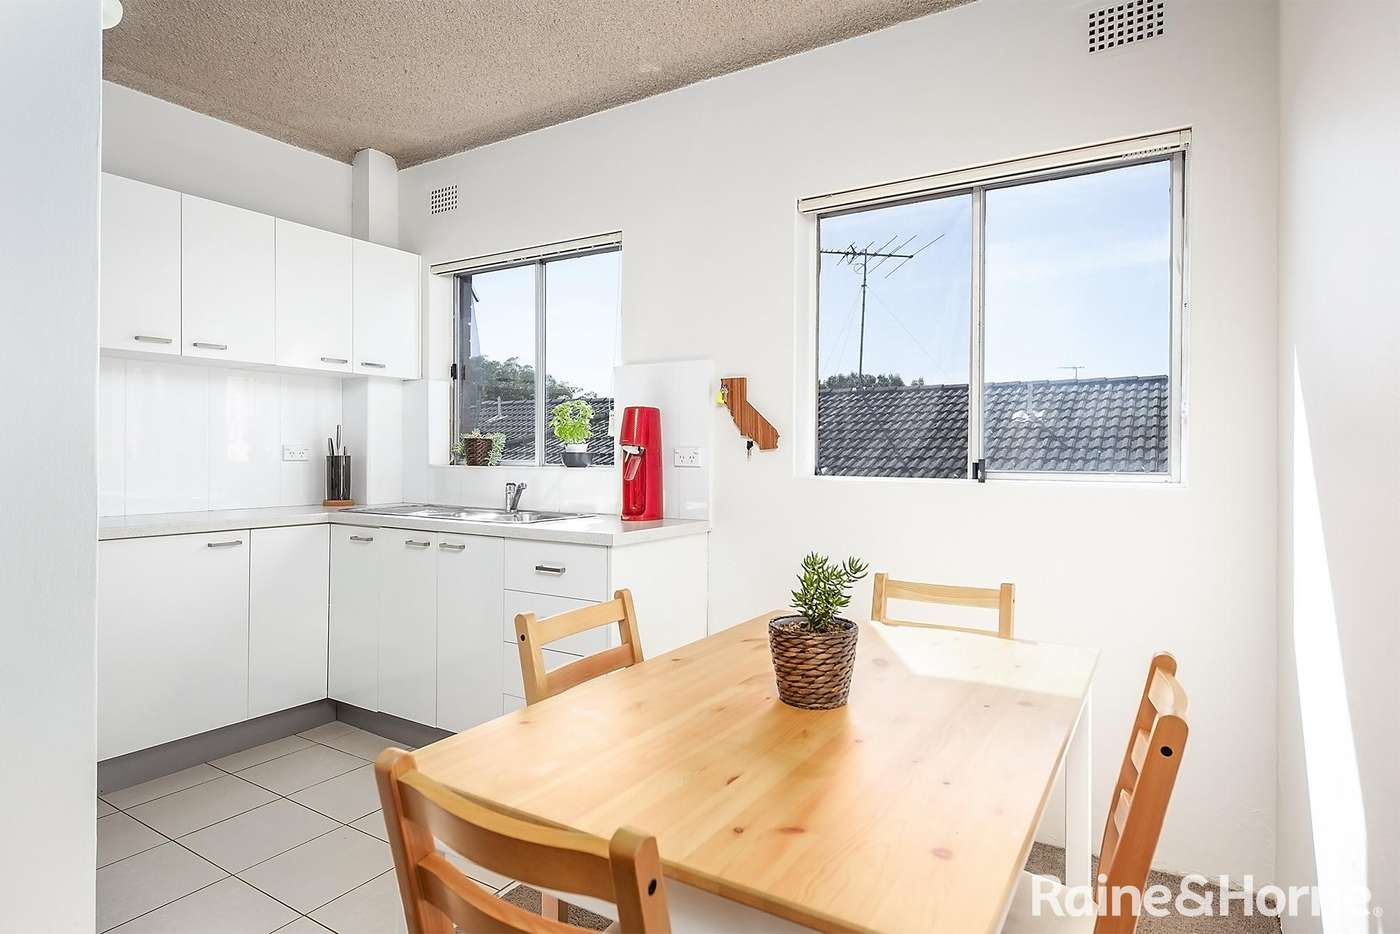 Sixth view of Homely apartment listing, 11/262 Maroubra Road, Maroubra NSW 2035